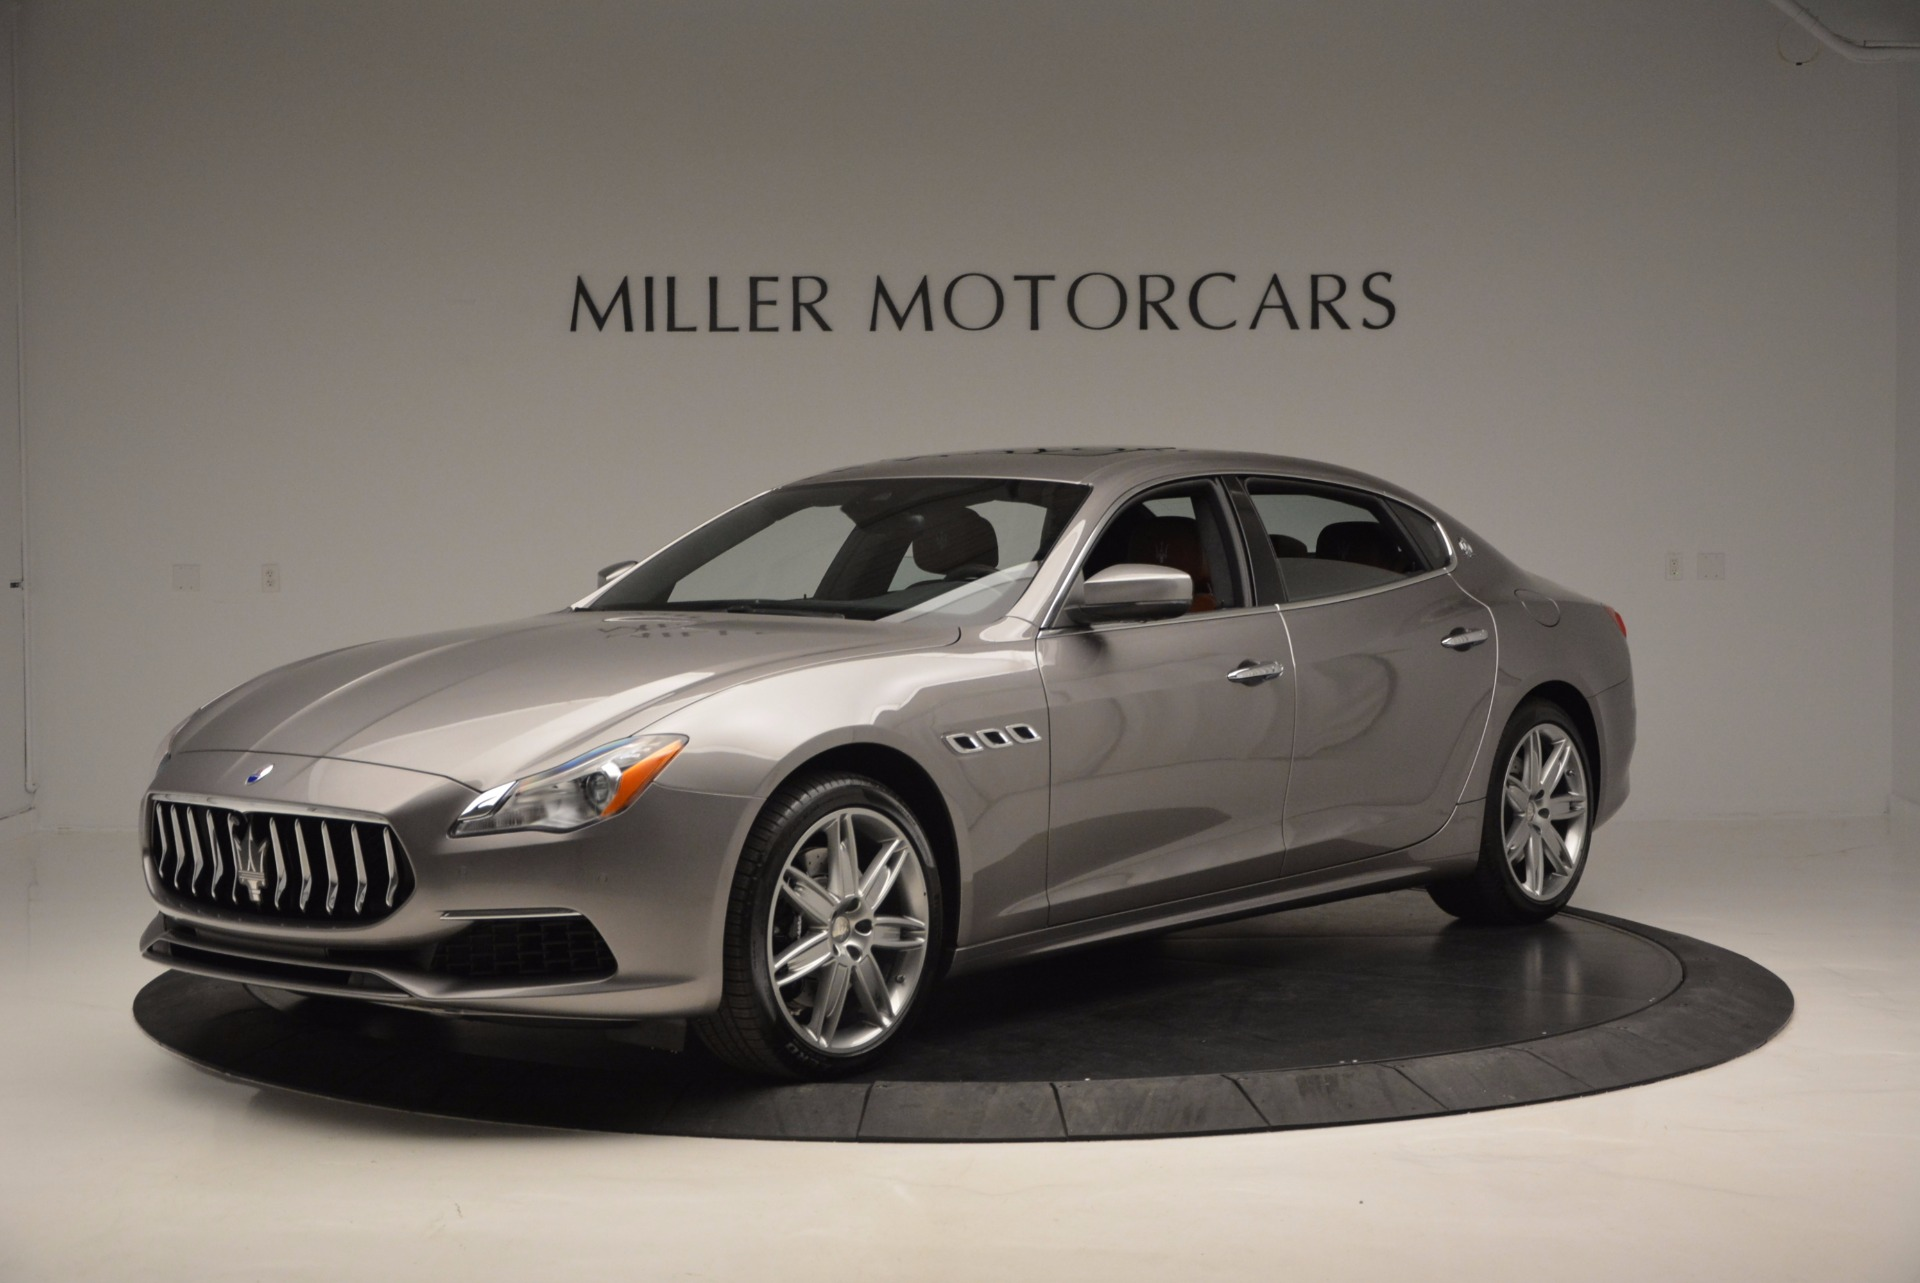 New 2017 Maserati Quattroporte S Q4 GranLusso For Sale In Greenwich, CT 1354_p2